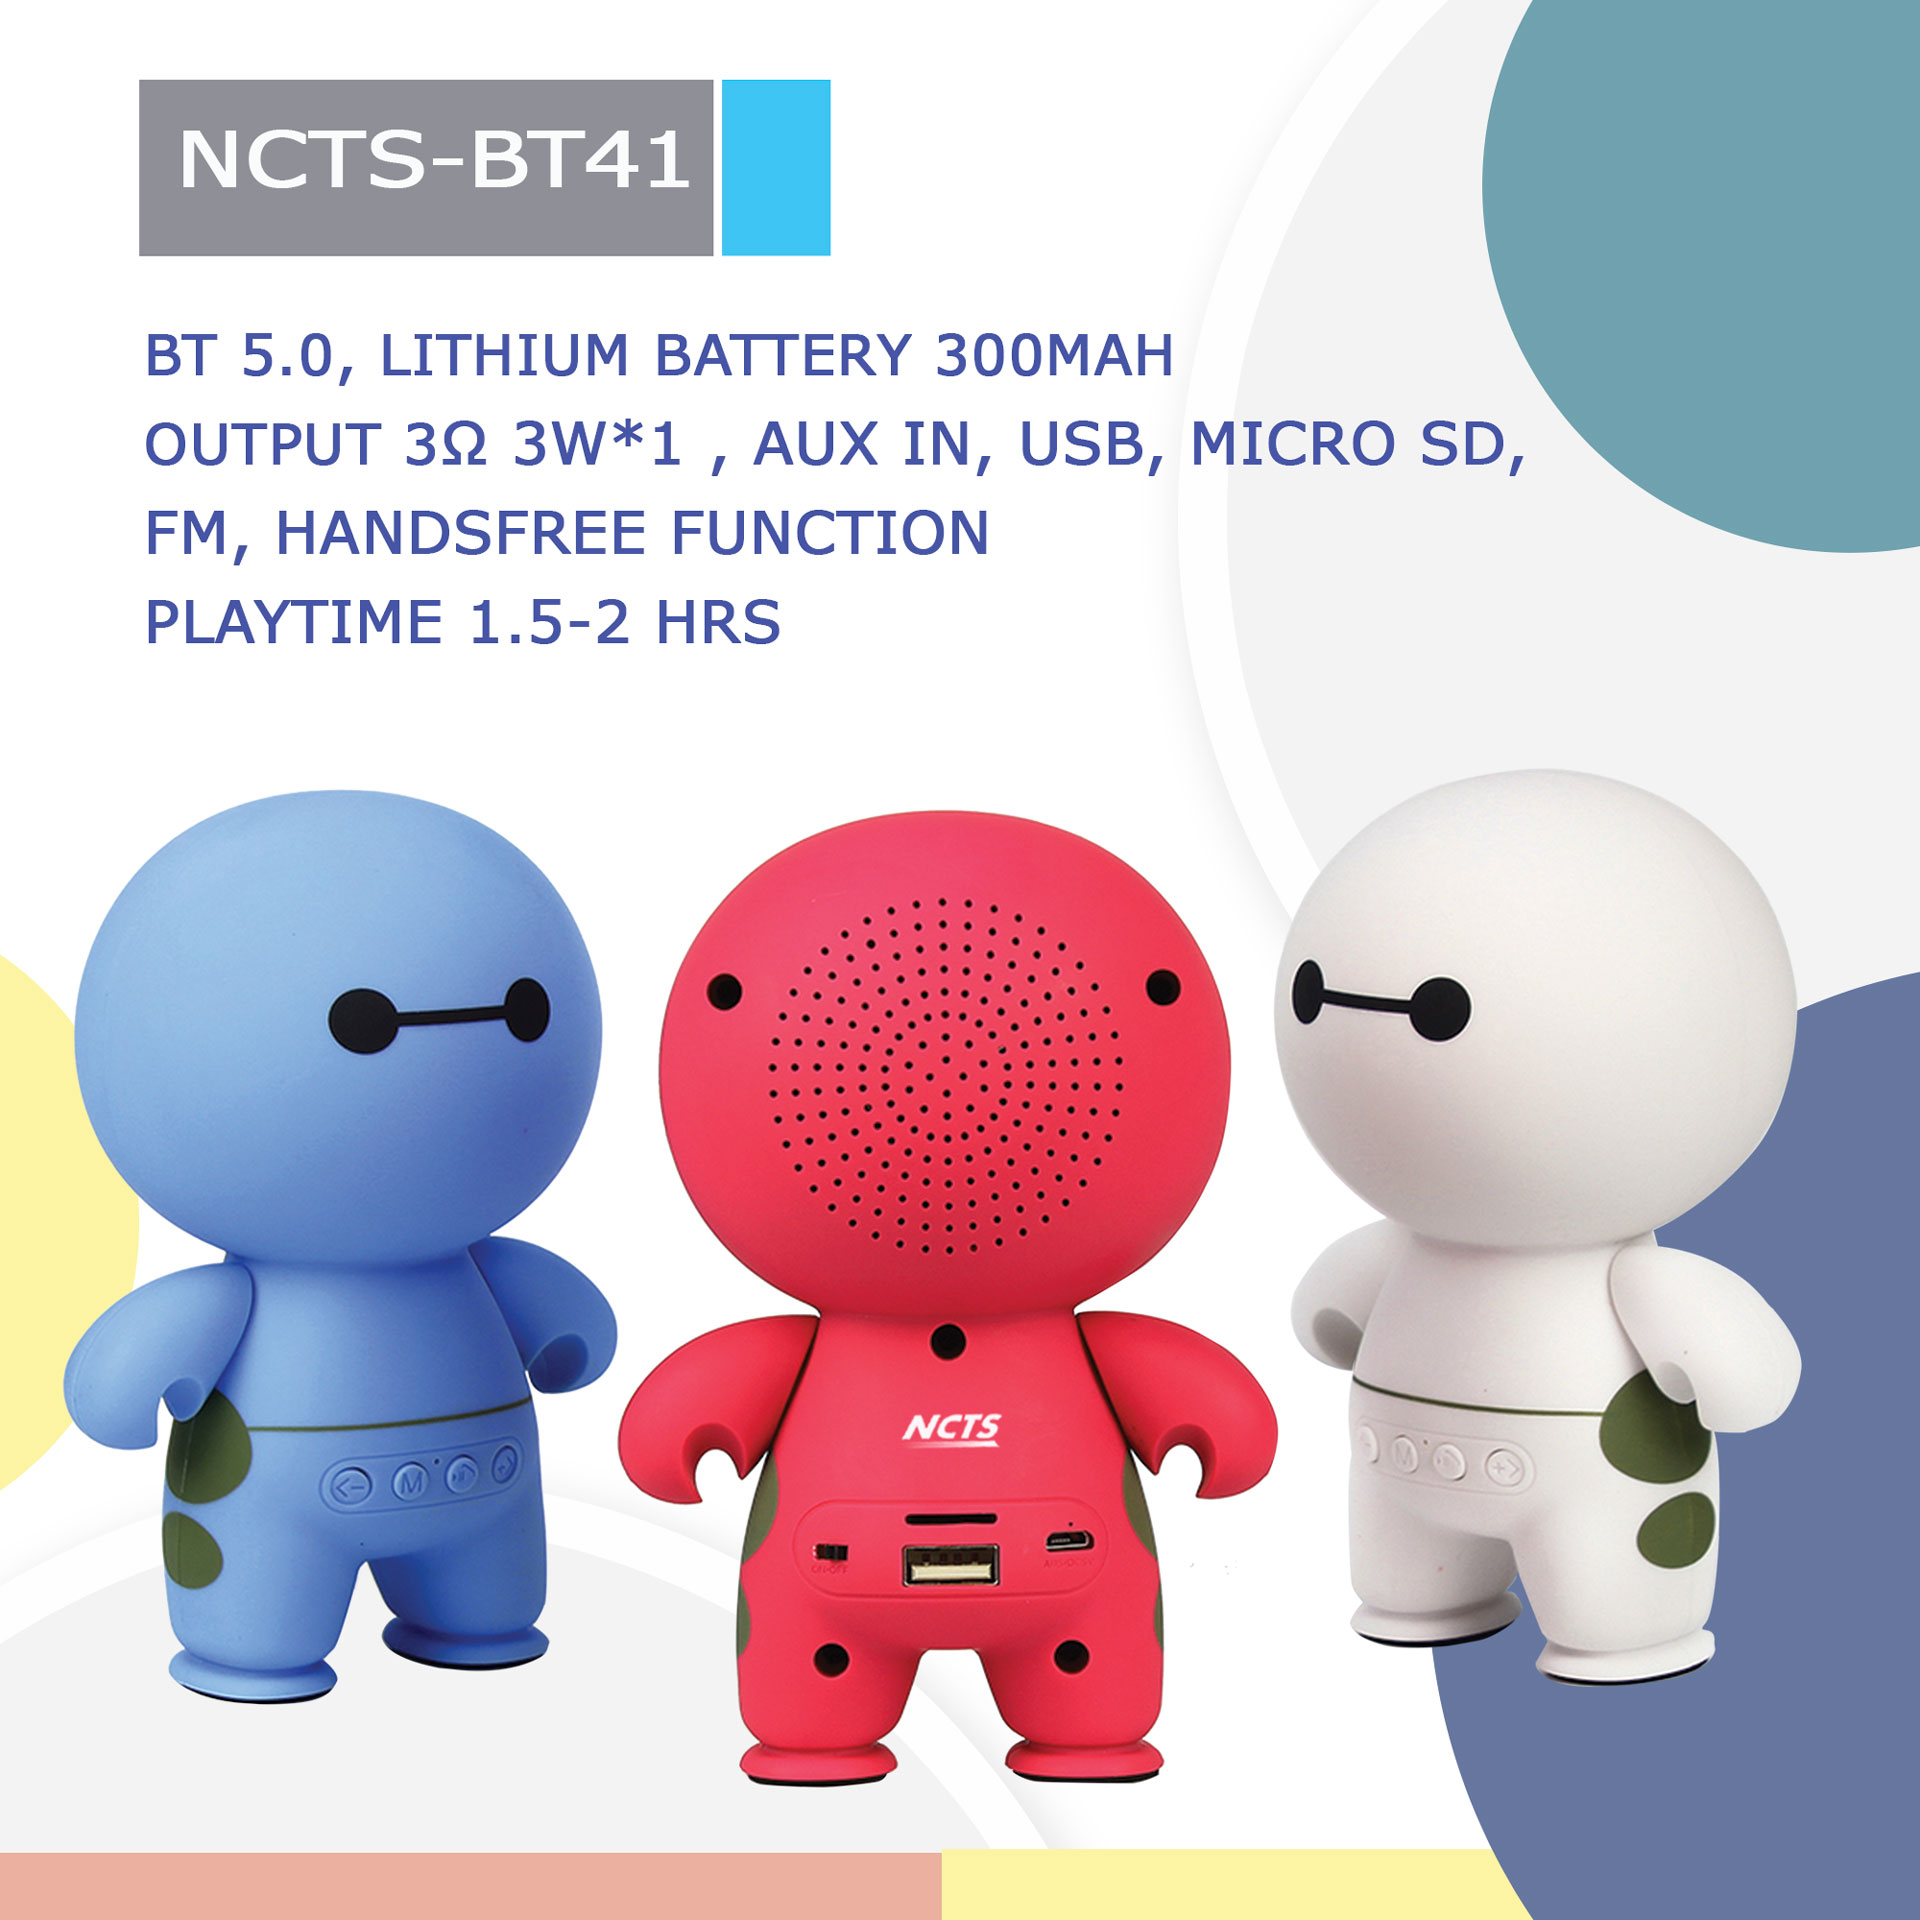 NCTS-BT41